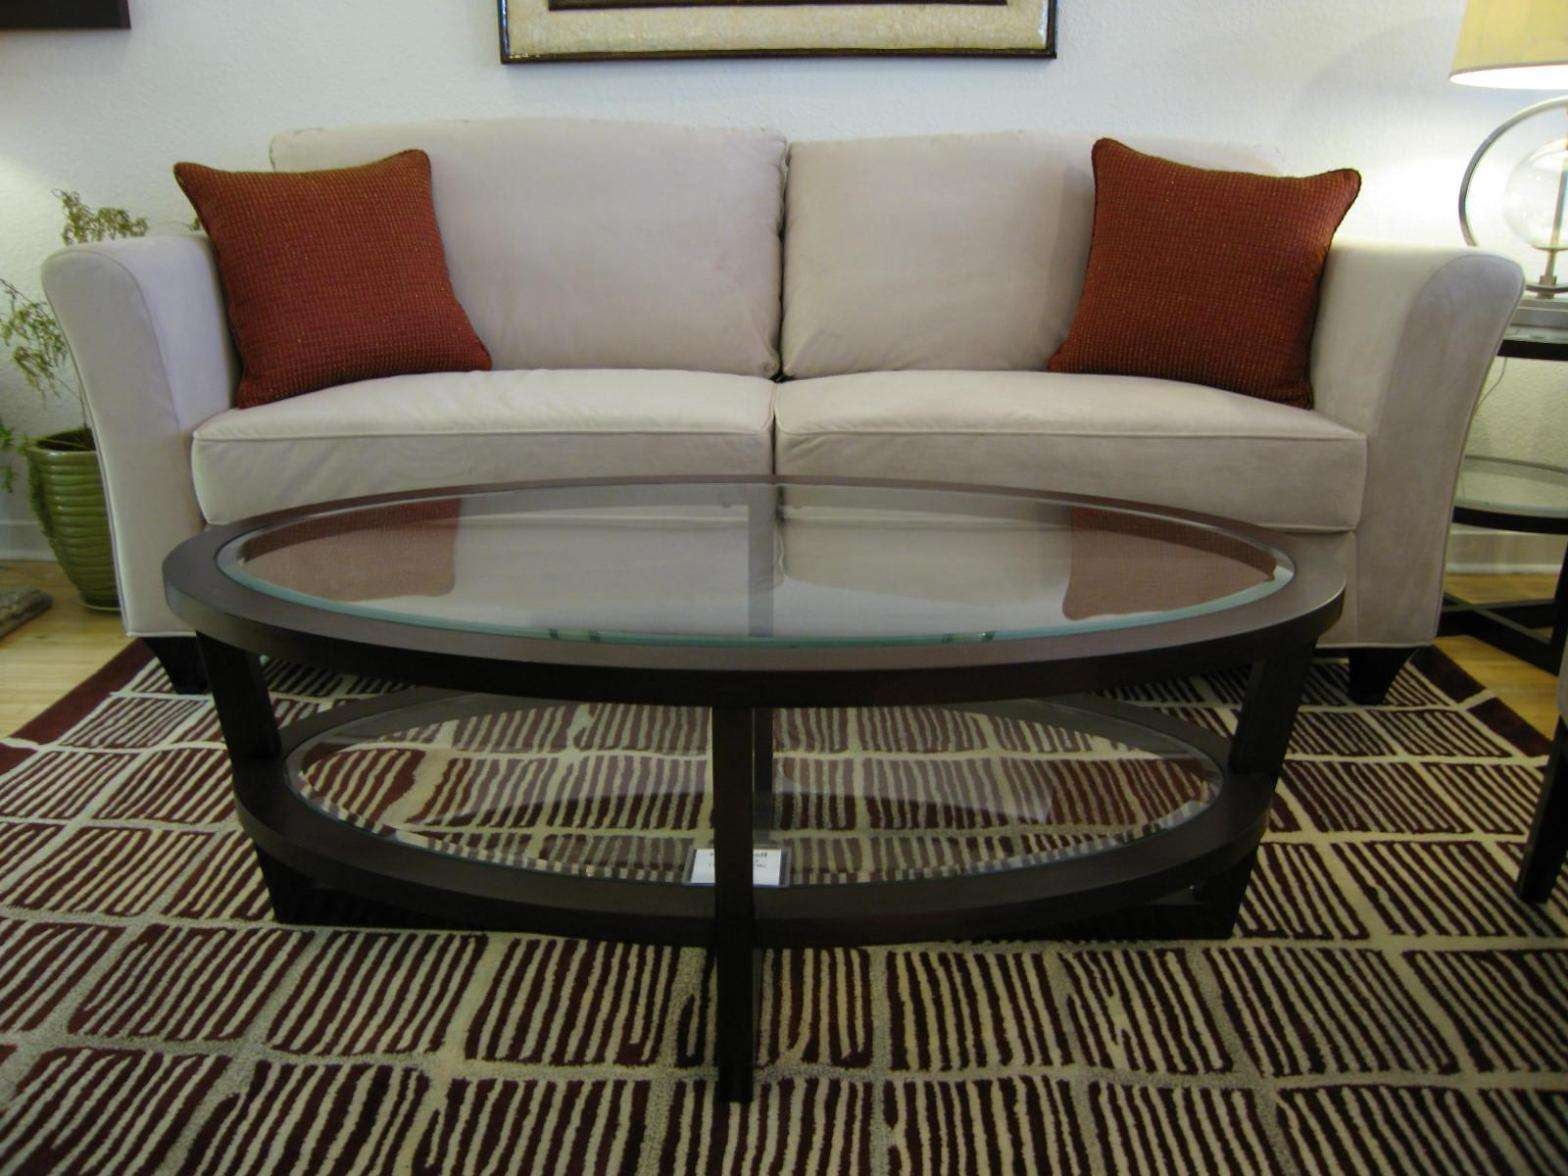 Widely Used Oval Glass Coffee Tables Pertaining To Oval Glass Wood Coffee Table Best Small — The Home Redesign : Very (View 10 of 20)